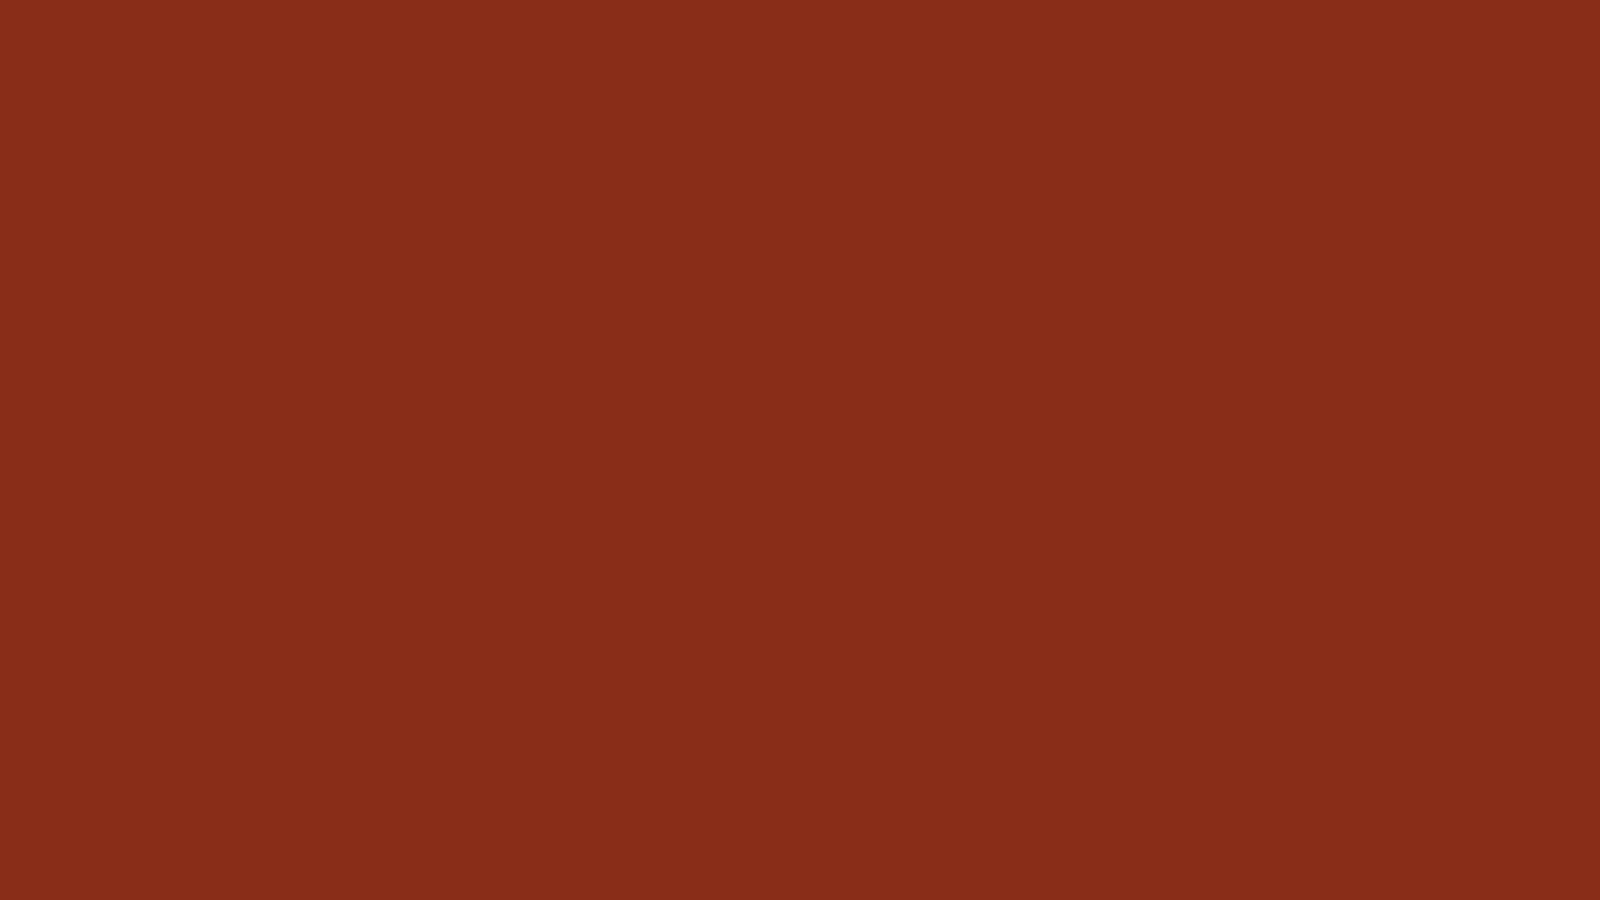 1600x900 Sienna Solid Color Background